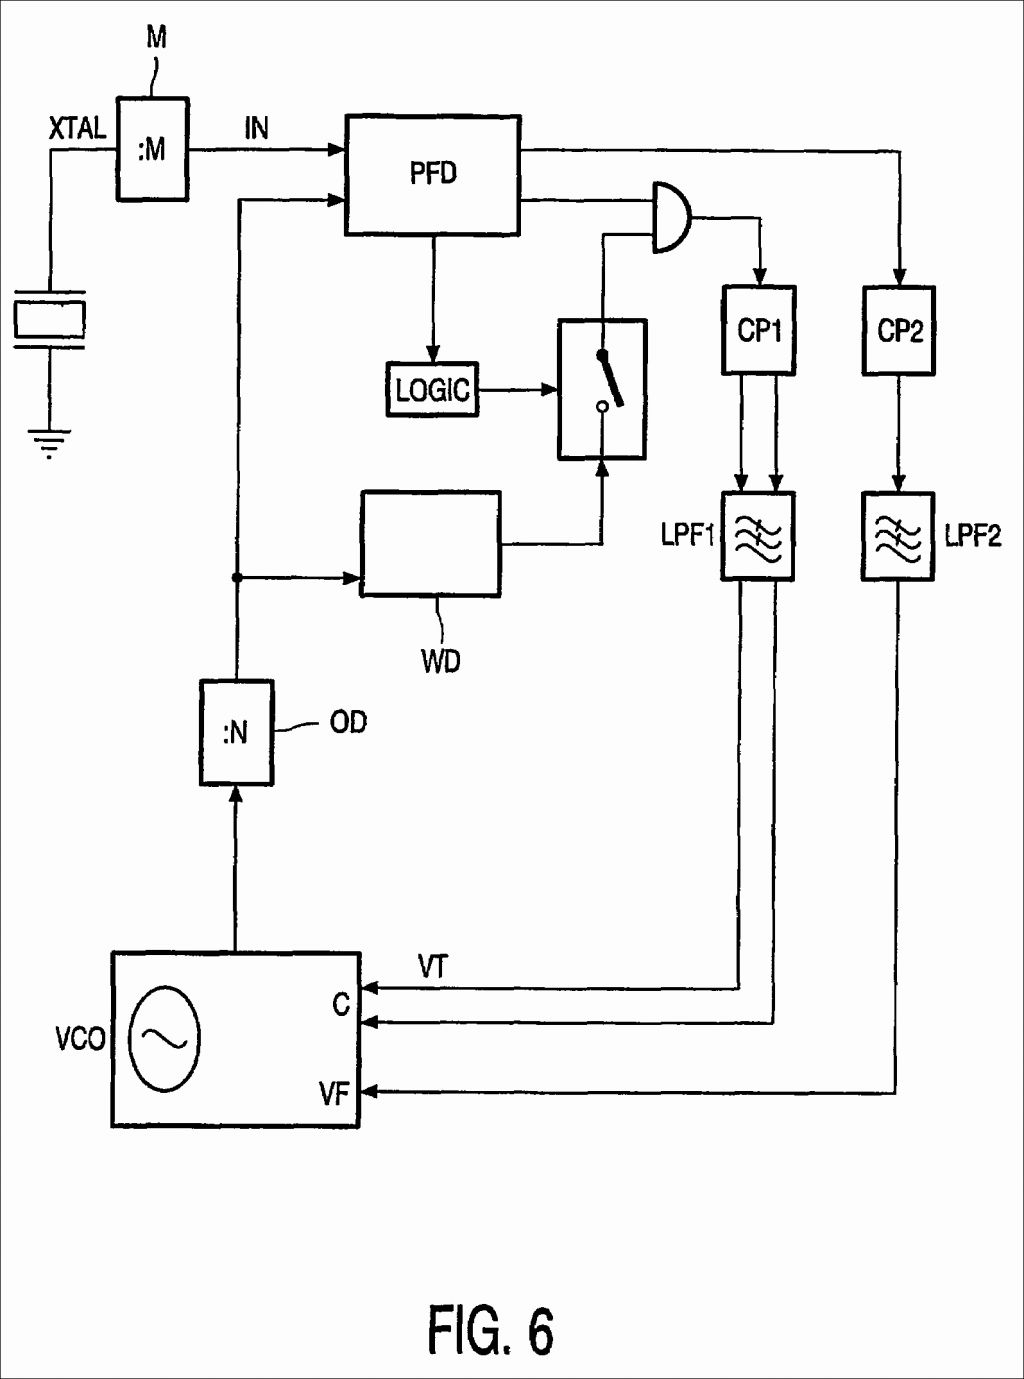 kwikee electric step wiring diagram Download-Kwikee Electric Step Wiring Diagram Luxury 220v Wiring Diagram Lovely Beautiful L15 30p Wiring Diagram 20 Amp 10-l